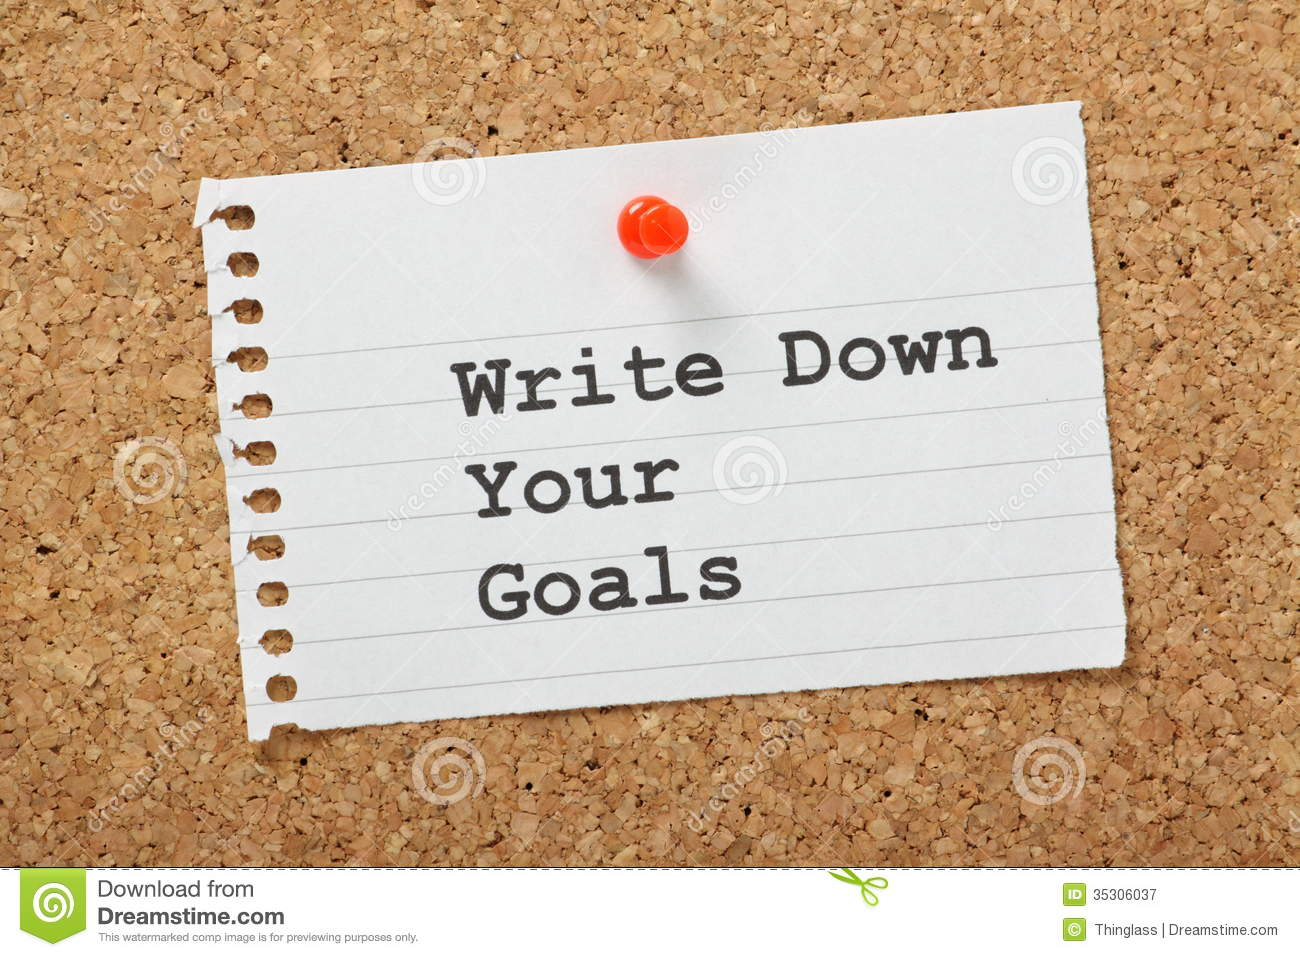 write down your goals stock image image of dreams reminder  write down your goals